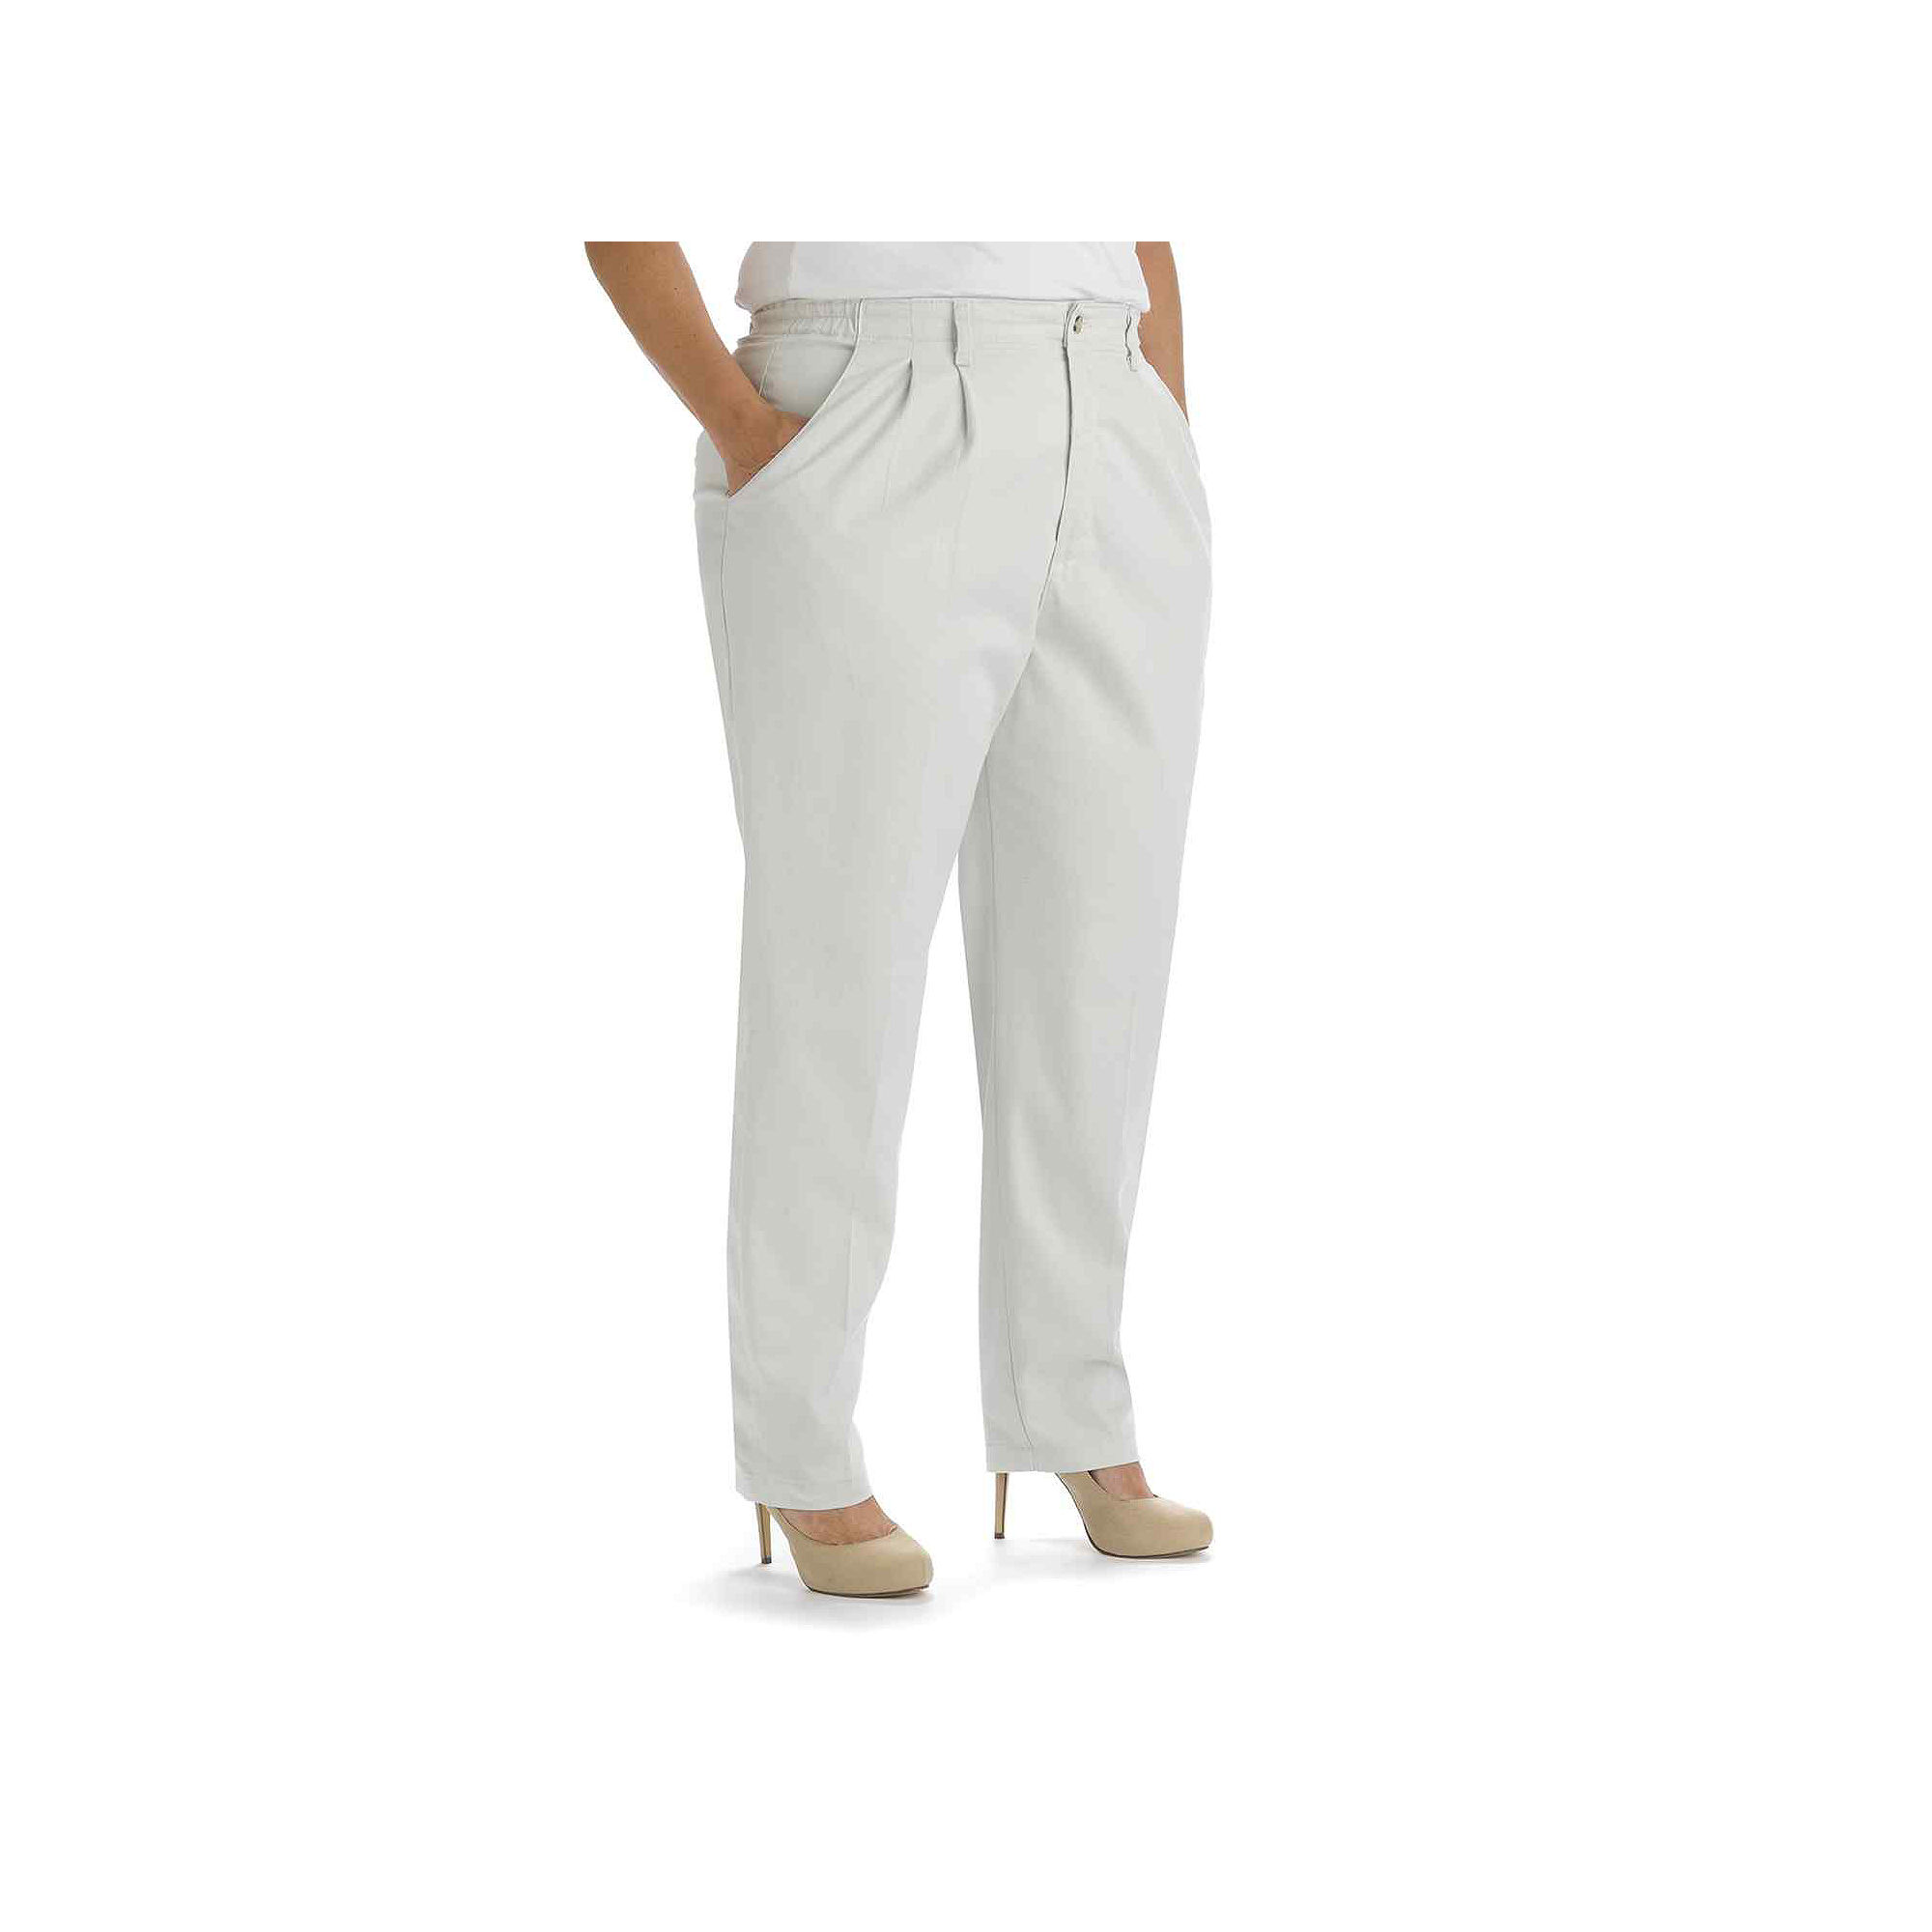 Jcpenney Jeans And Pants Clearance Deals Plussize